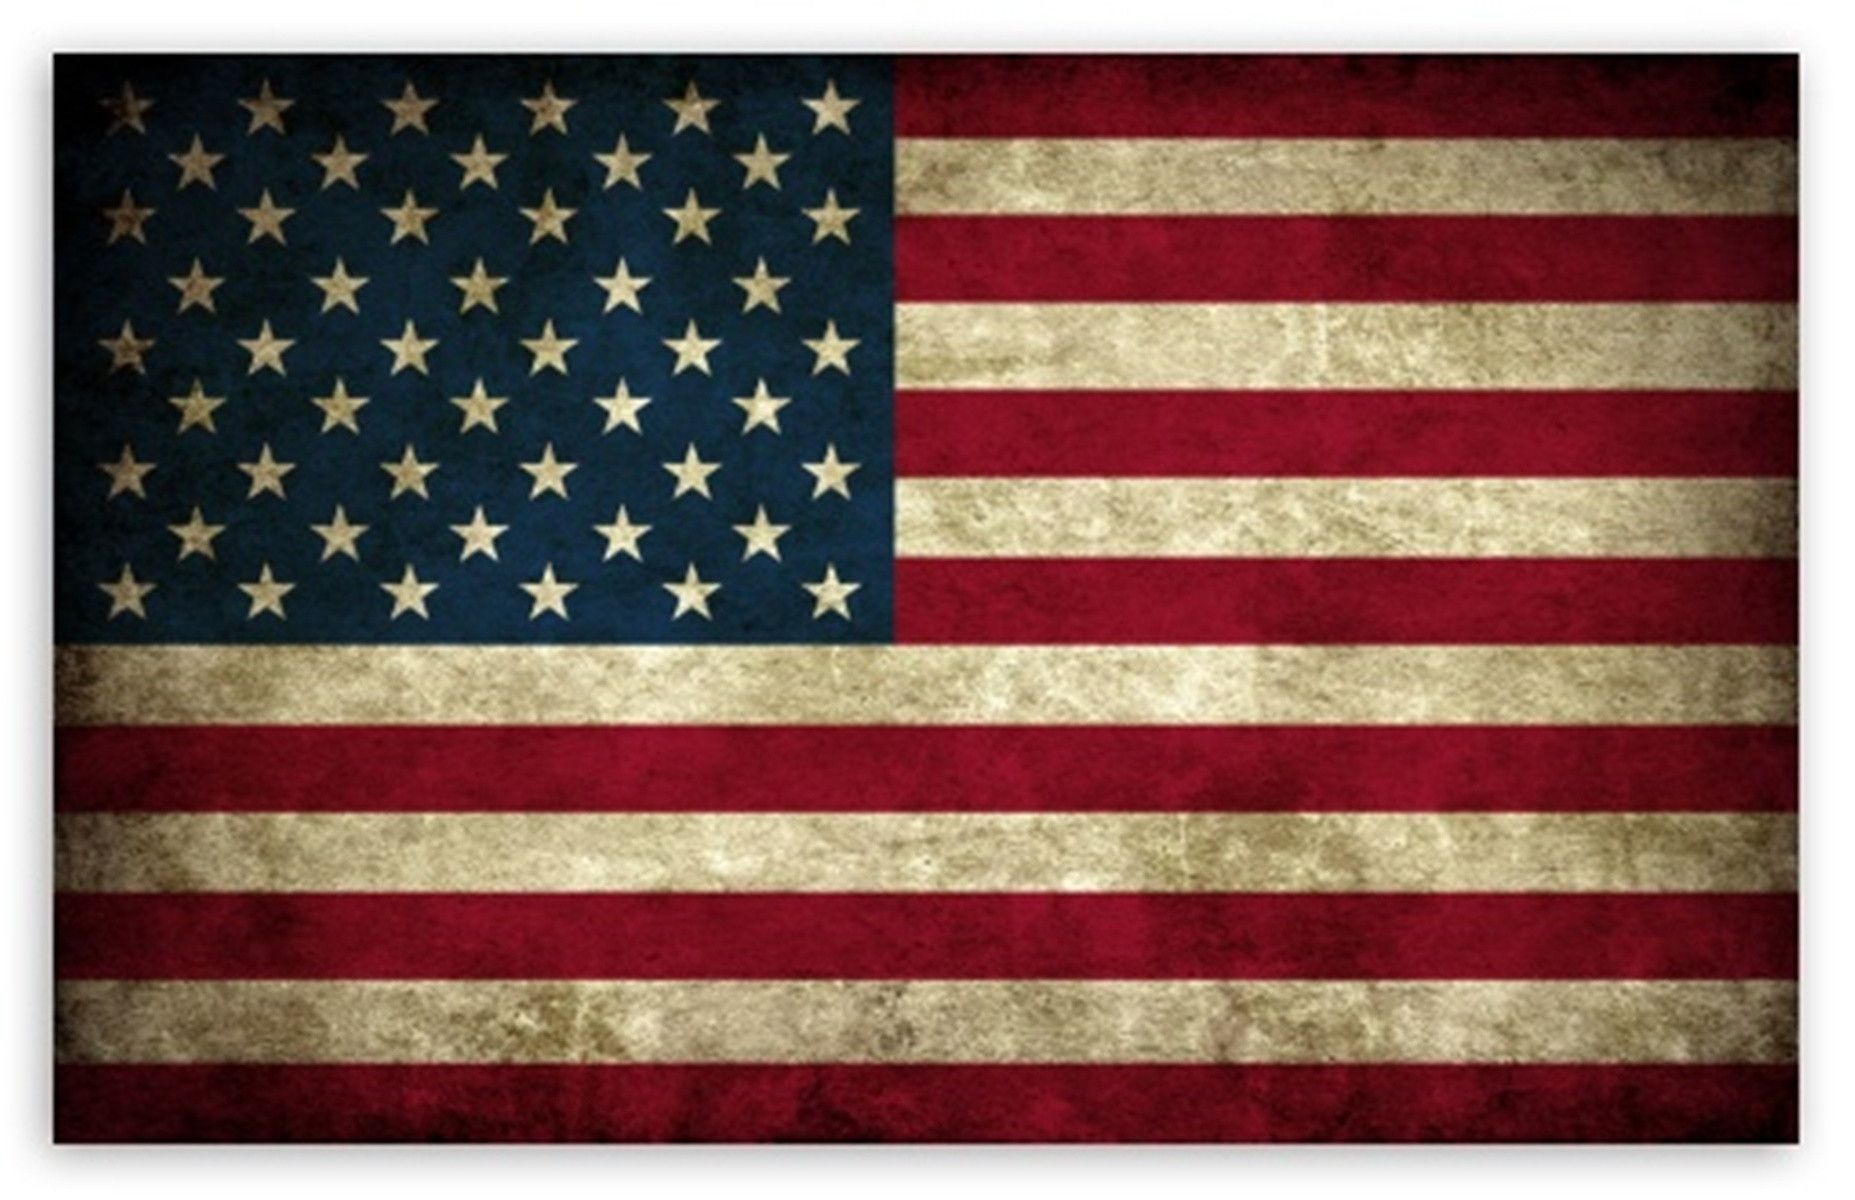 United States Flag Wallpapers Top Free United States Flag